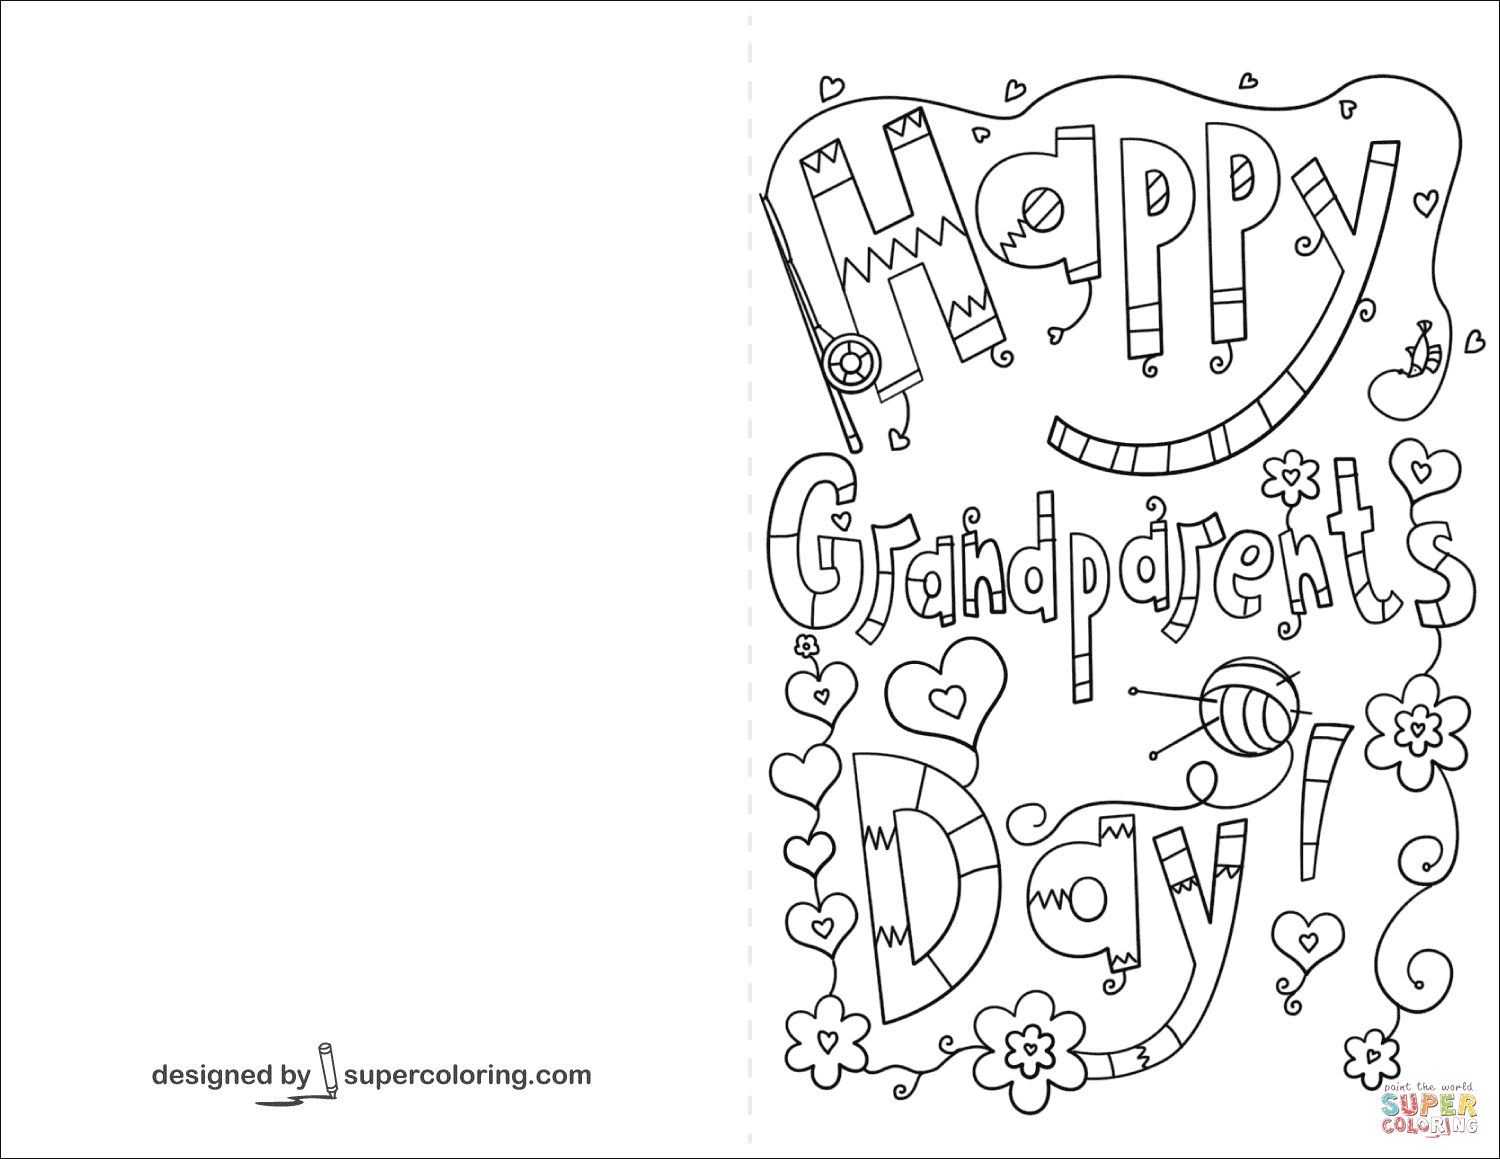 photograph relating to Grandparents Day Printable Coloring Pages called Joyful Grandparents Working day Doodle Card coloring site Cost-free